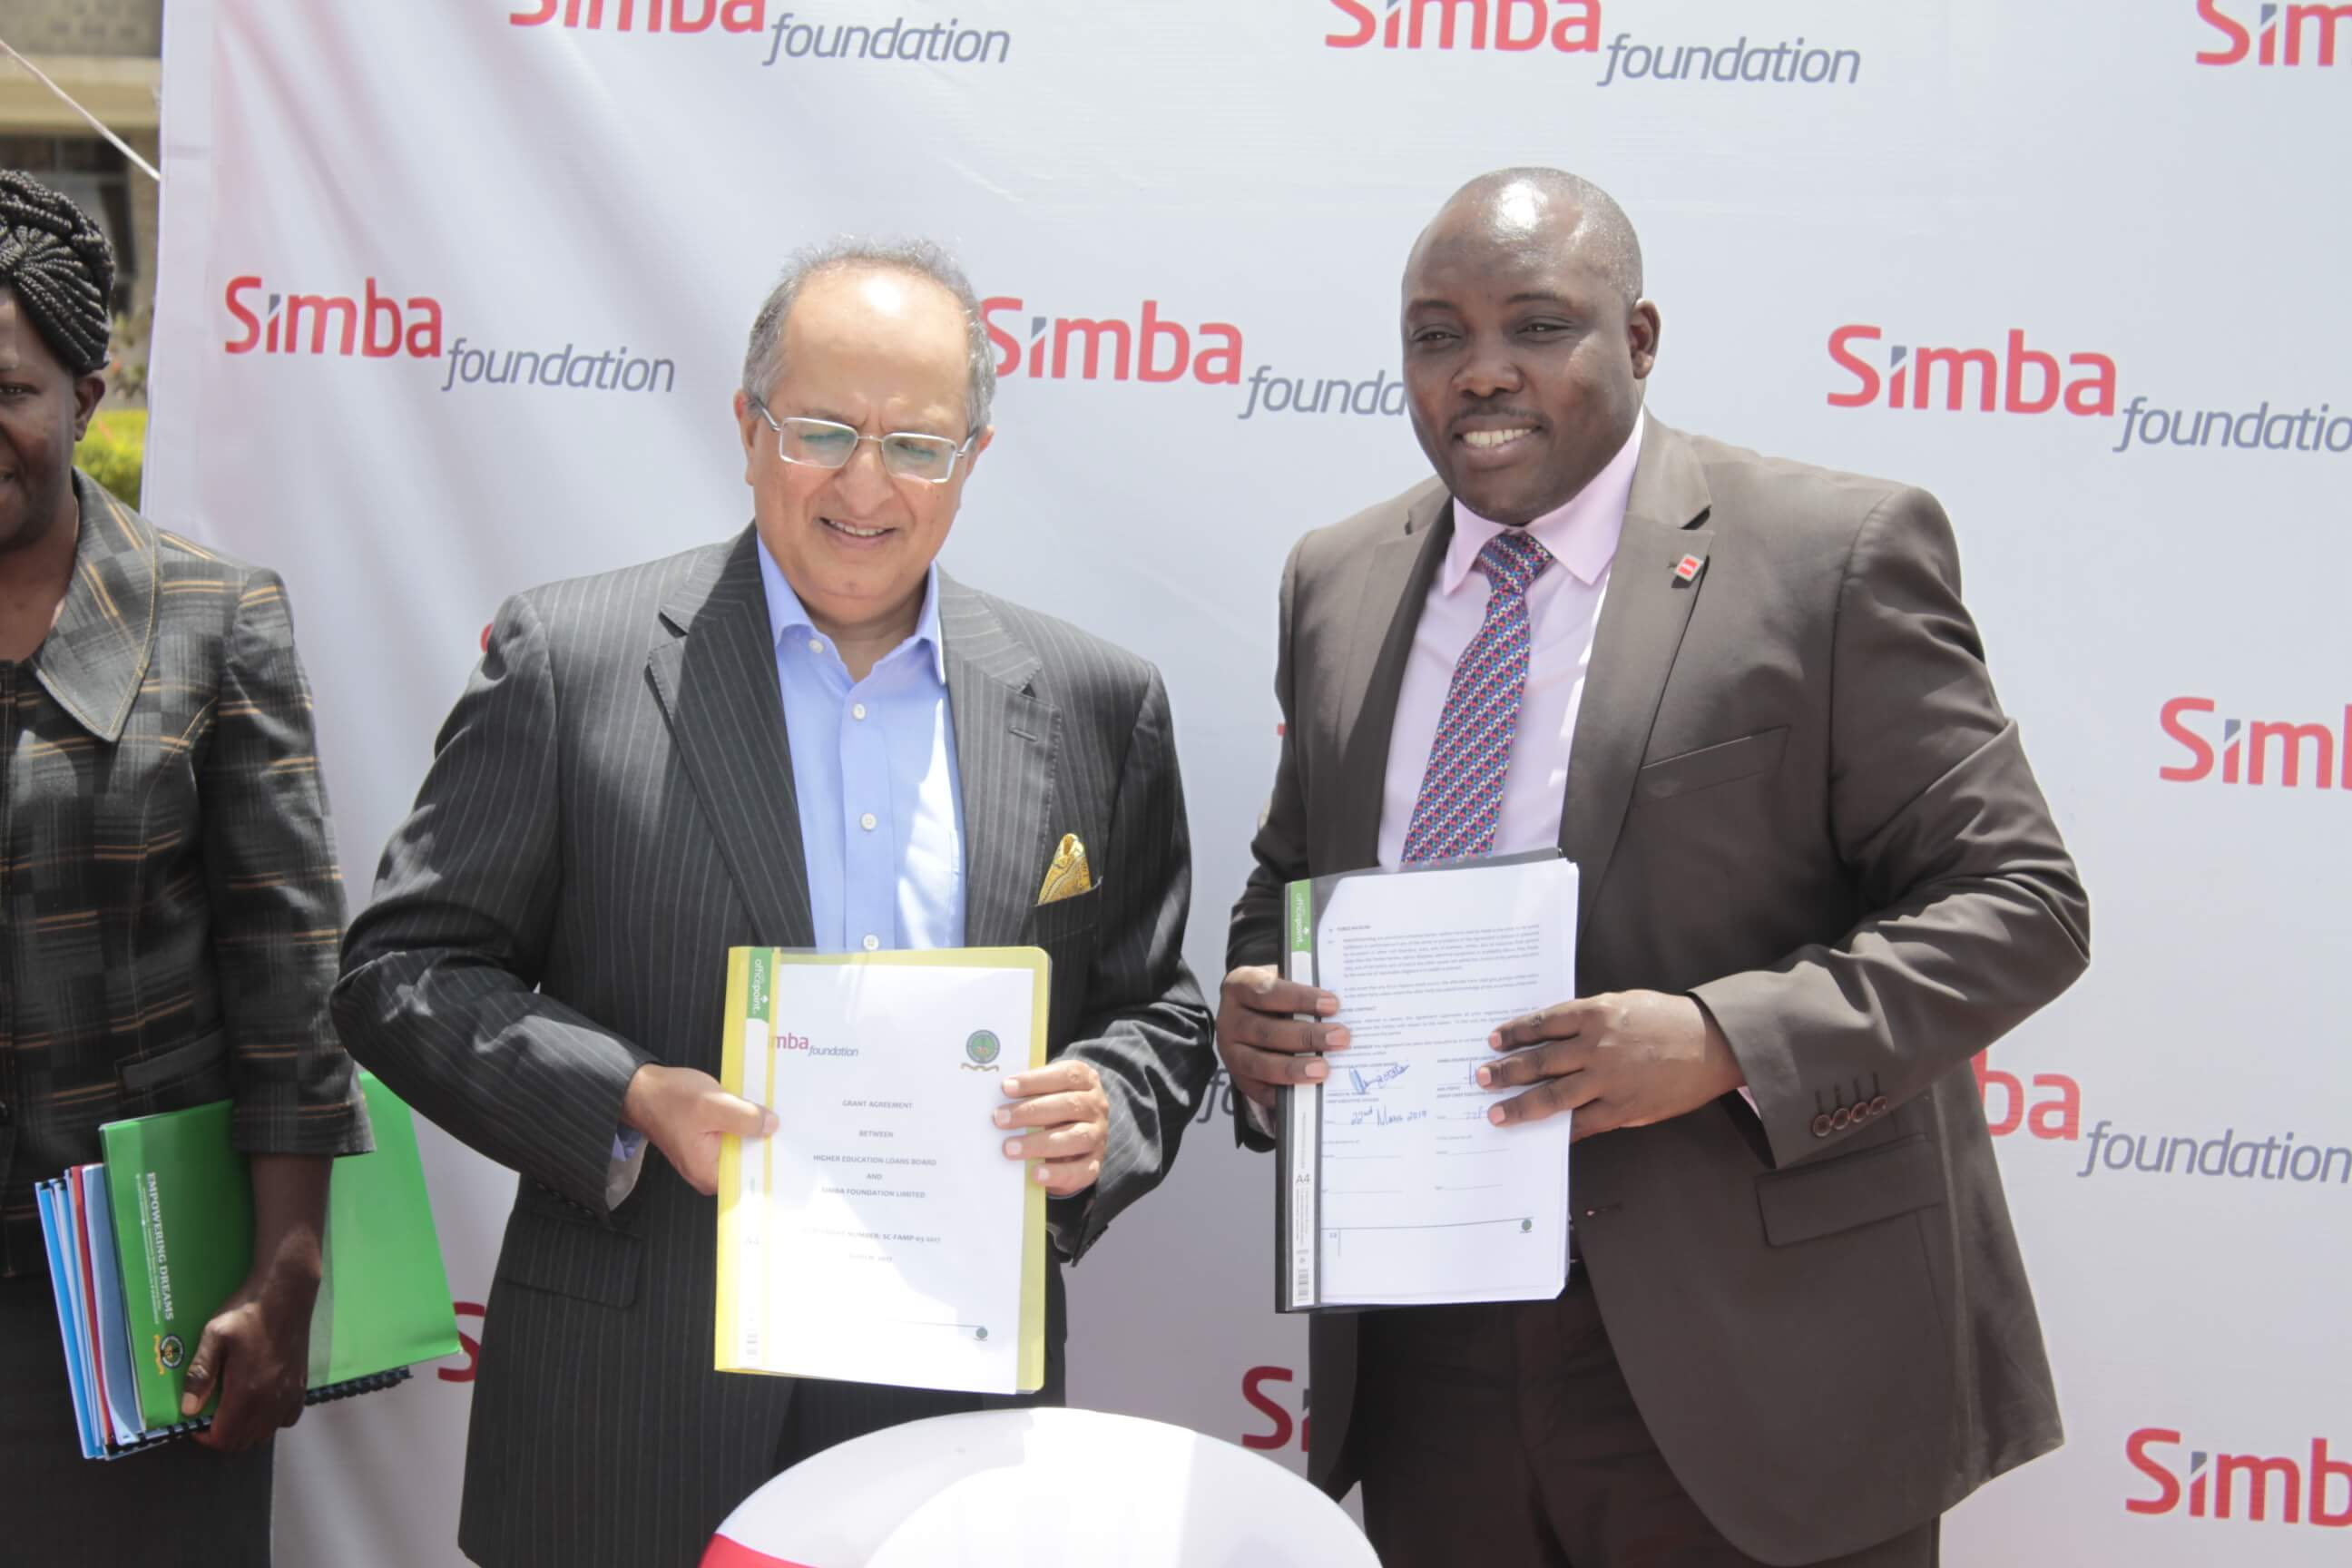 Simba Corporation launches its Foundation with sh10 million investment